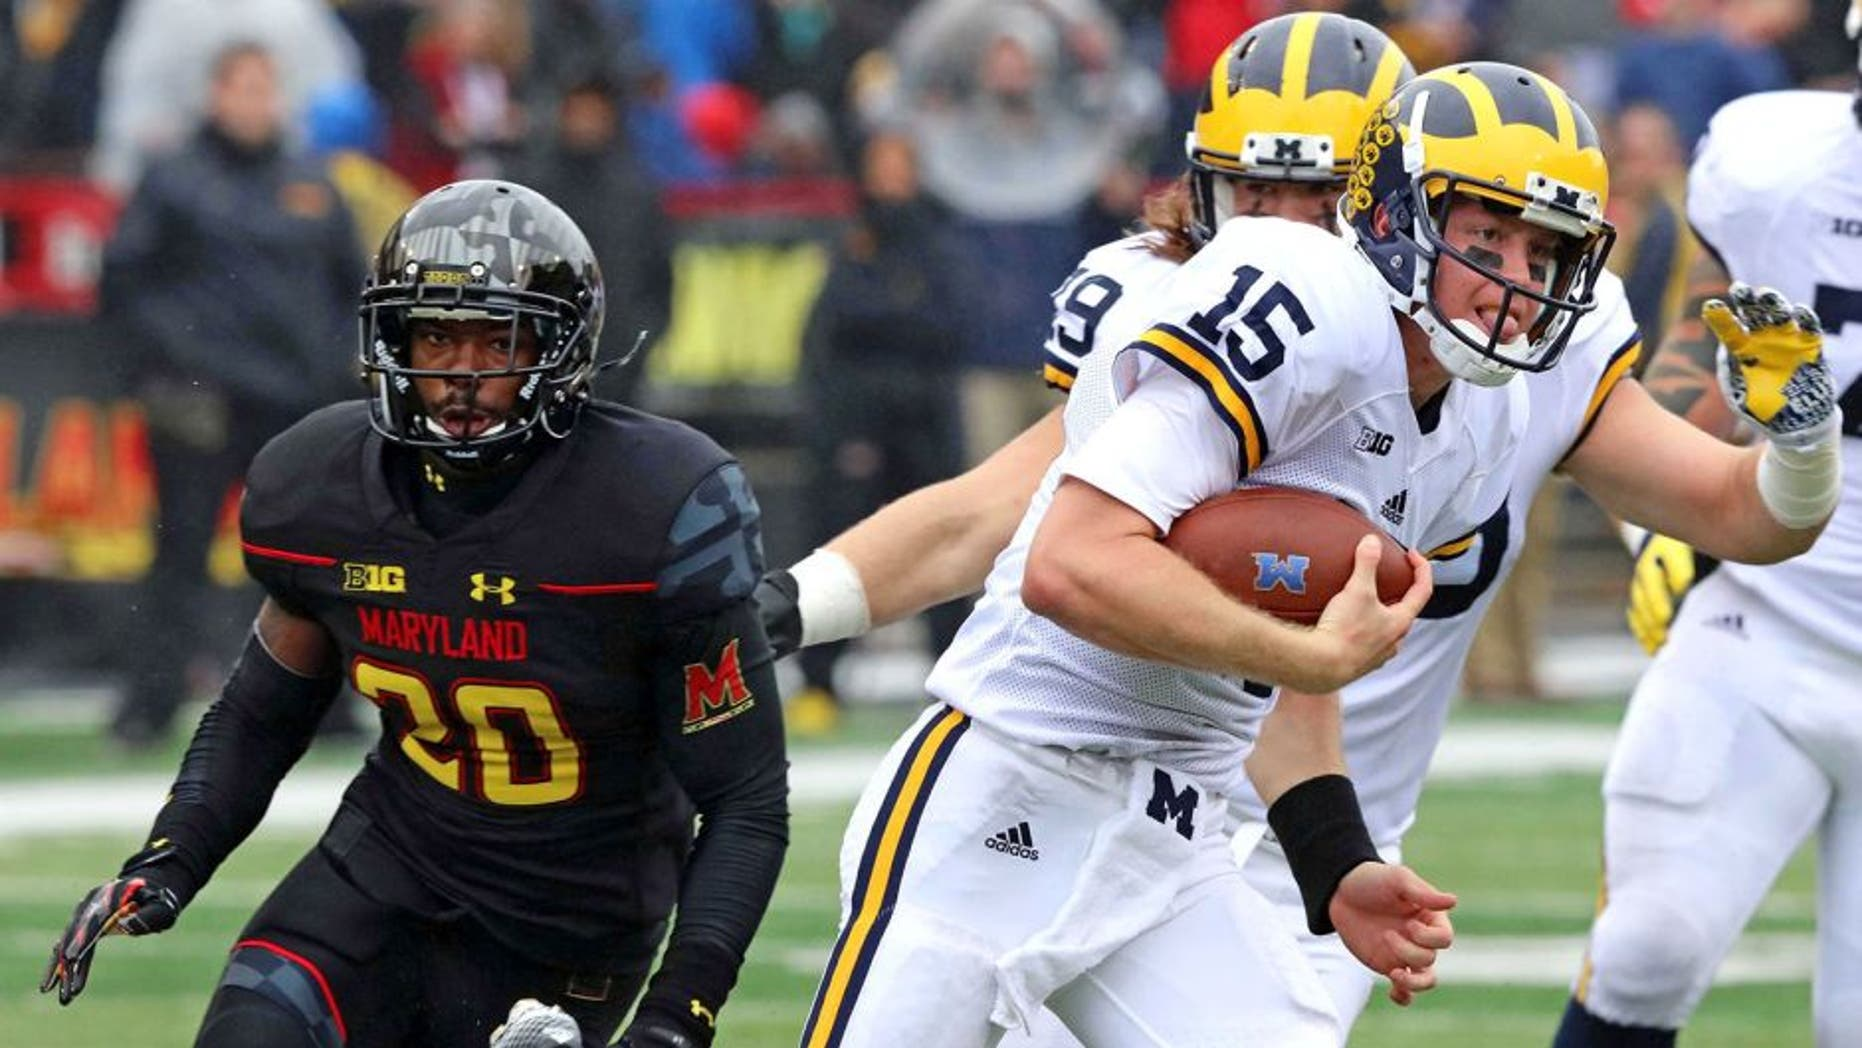 Oct 3, 2015; College Park, MD, USA; Michigan Wolverines quarterback Jake Rudock (15) runs for a gain past Maryland Terrapins defensive back Anthony Nixon (20) at Byrd Stadium. Mandatory Credit: Mitch Stringer-USA TODAY Sports